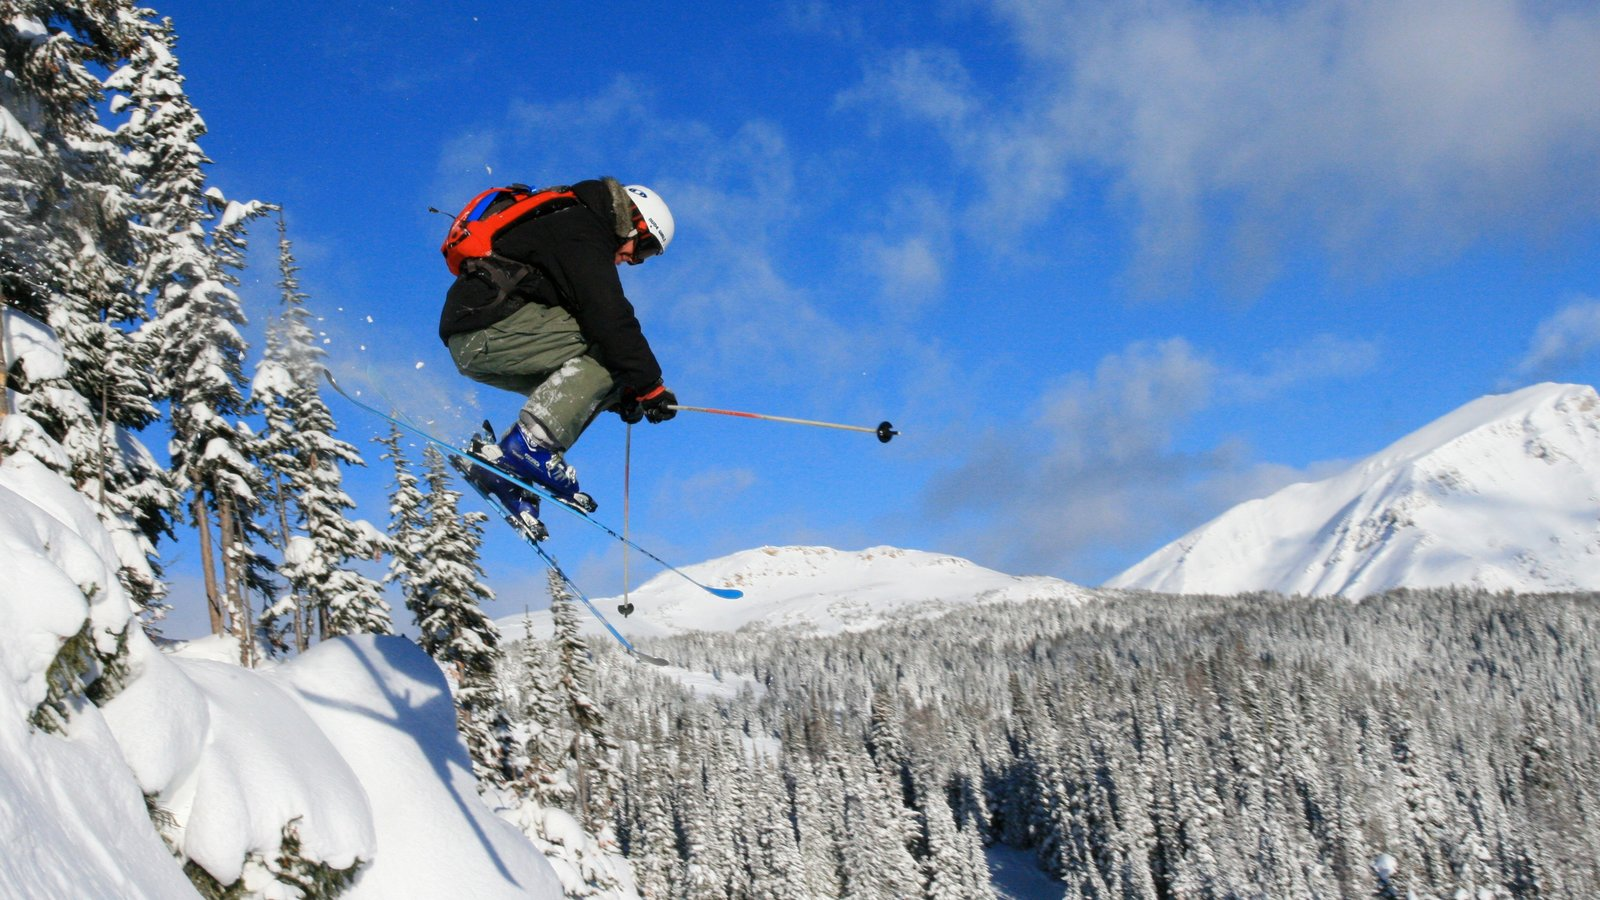 Sunshine Village which includes landscape views, snow and a sporting event